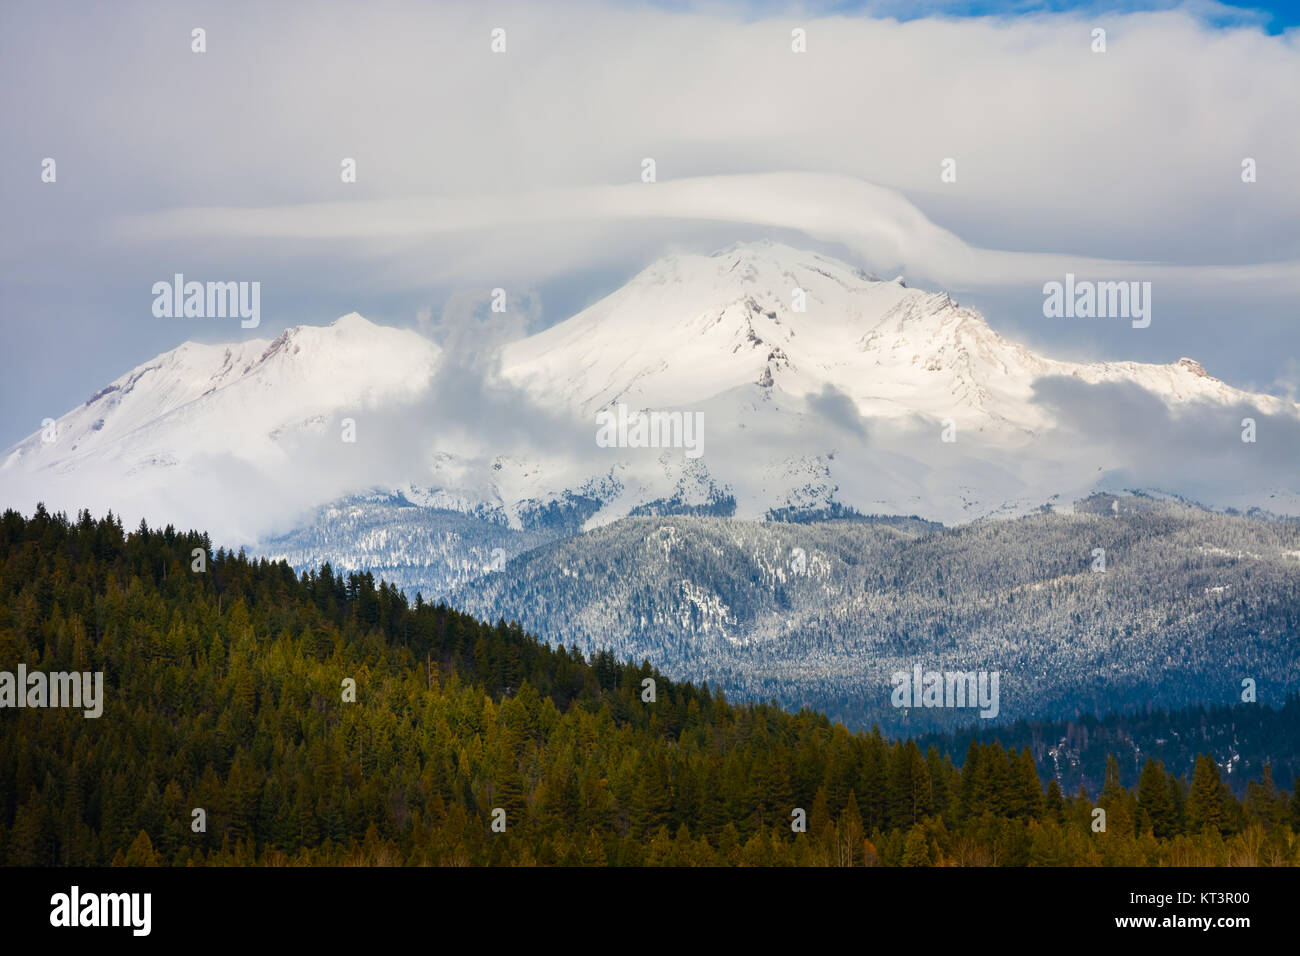 Mount Shasta in Northern California - Stock Image